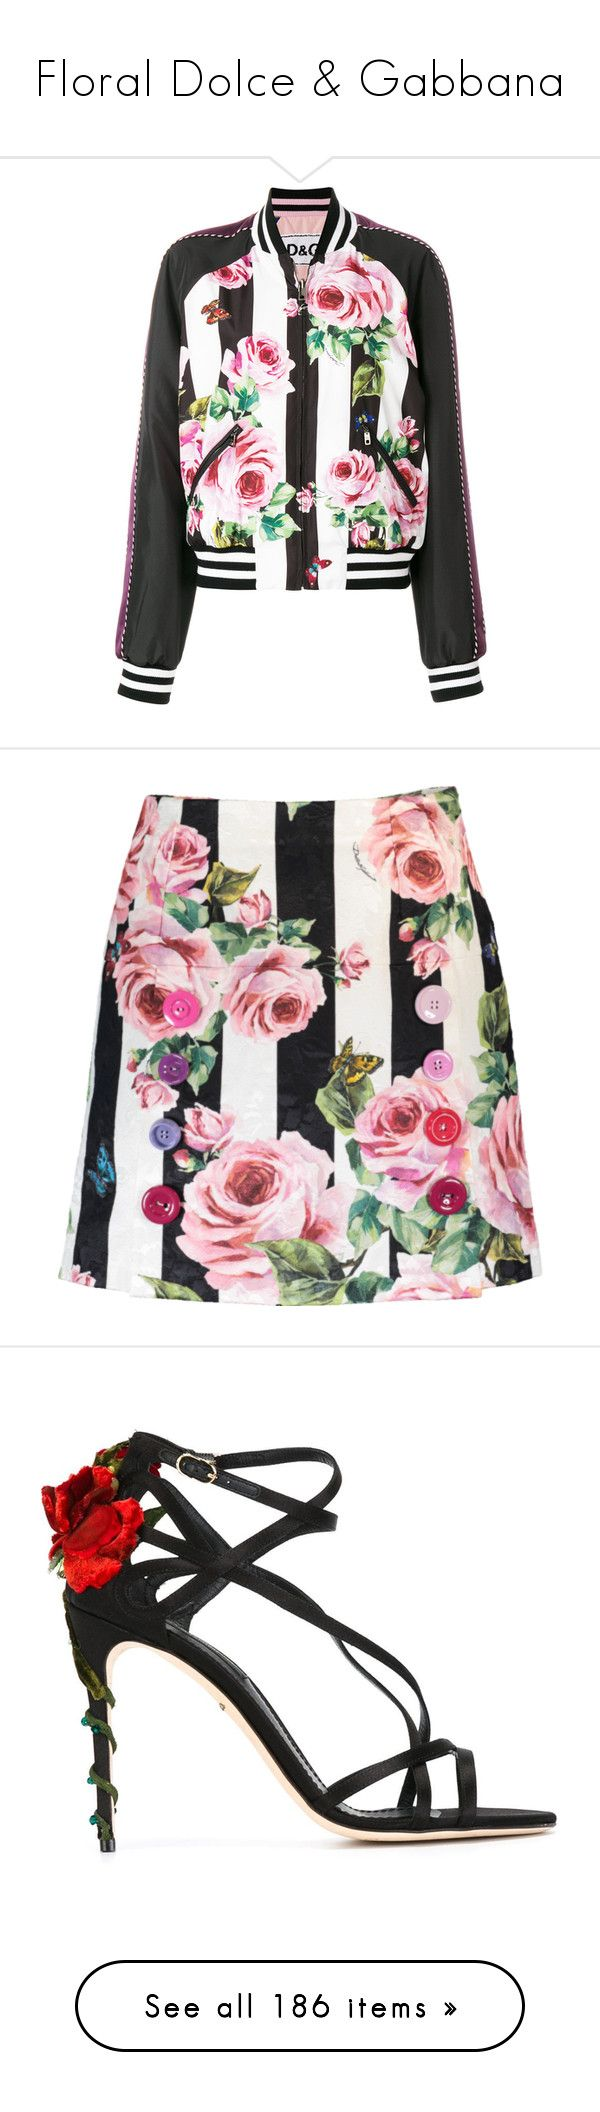 """""""Floral Dolce & Gabbana"""" by luxury-naznaz ❤ liked on Polyvore featuring outerwear, jackets, black, flower jacket, flight jackets, floral bomber jackets, floral print bomber jacket, ruffled jackets, skirts and zip skirt"""